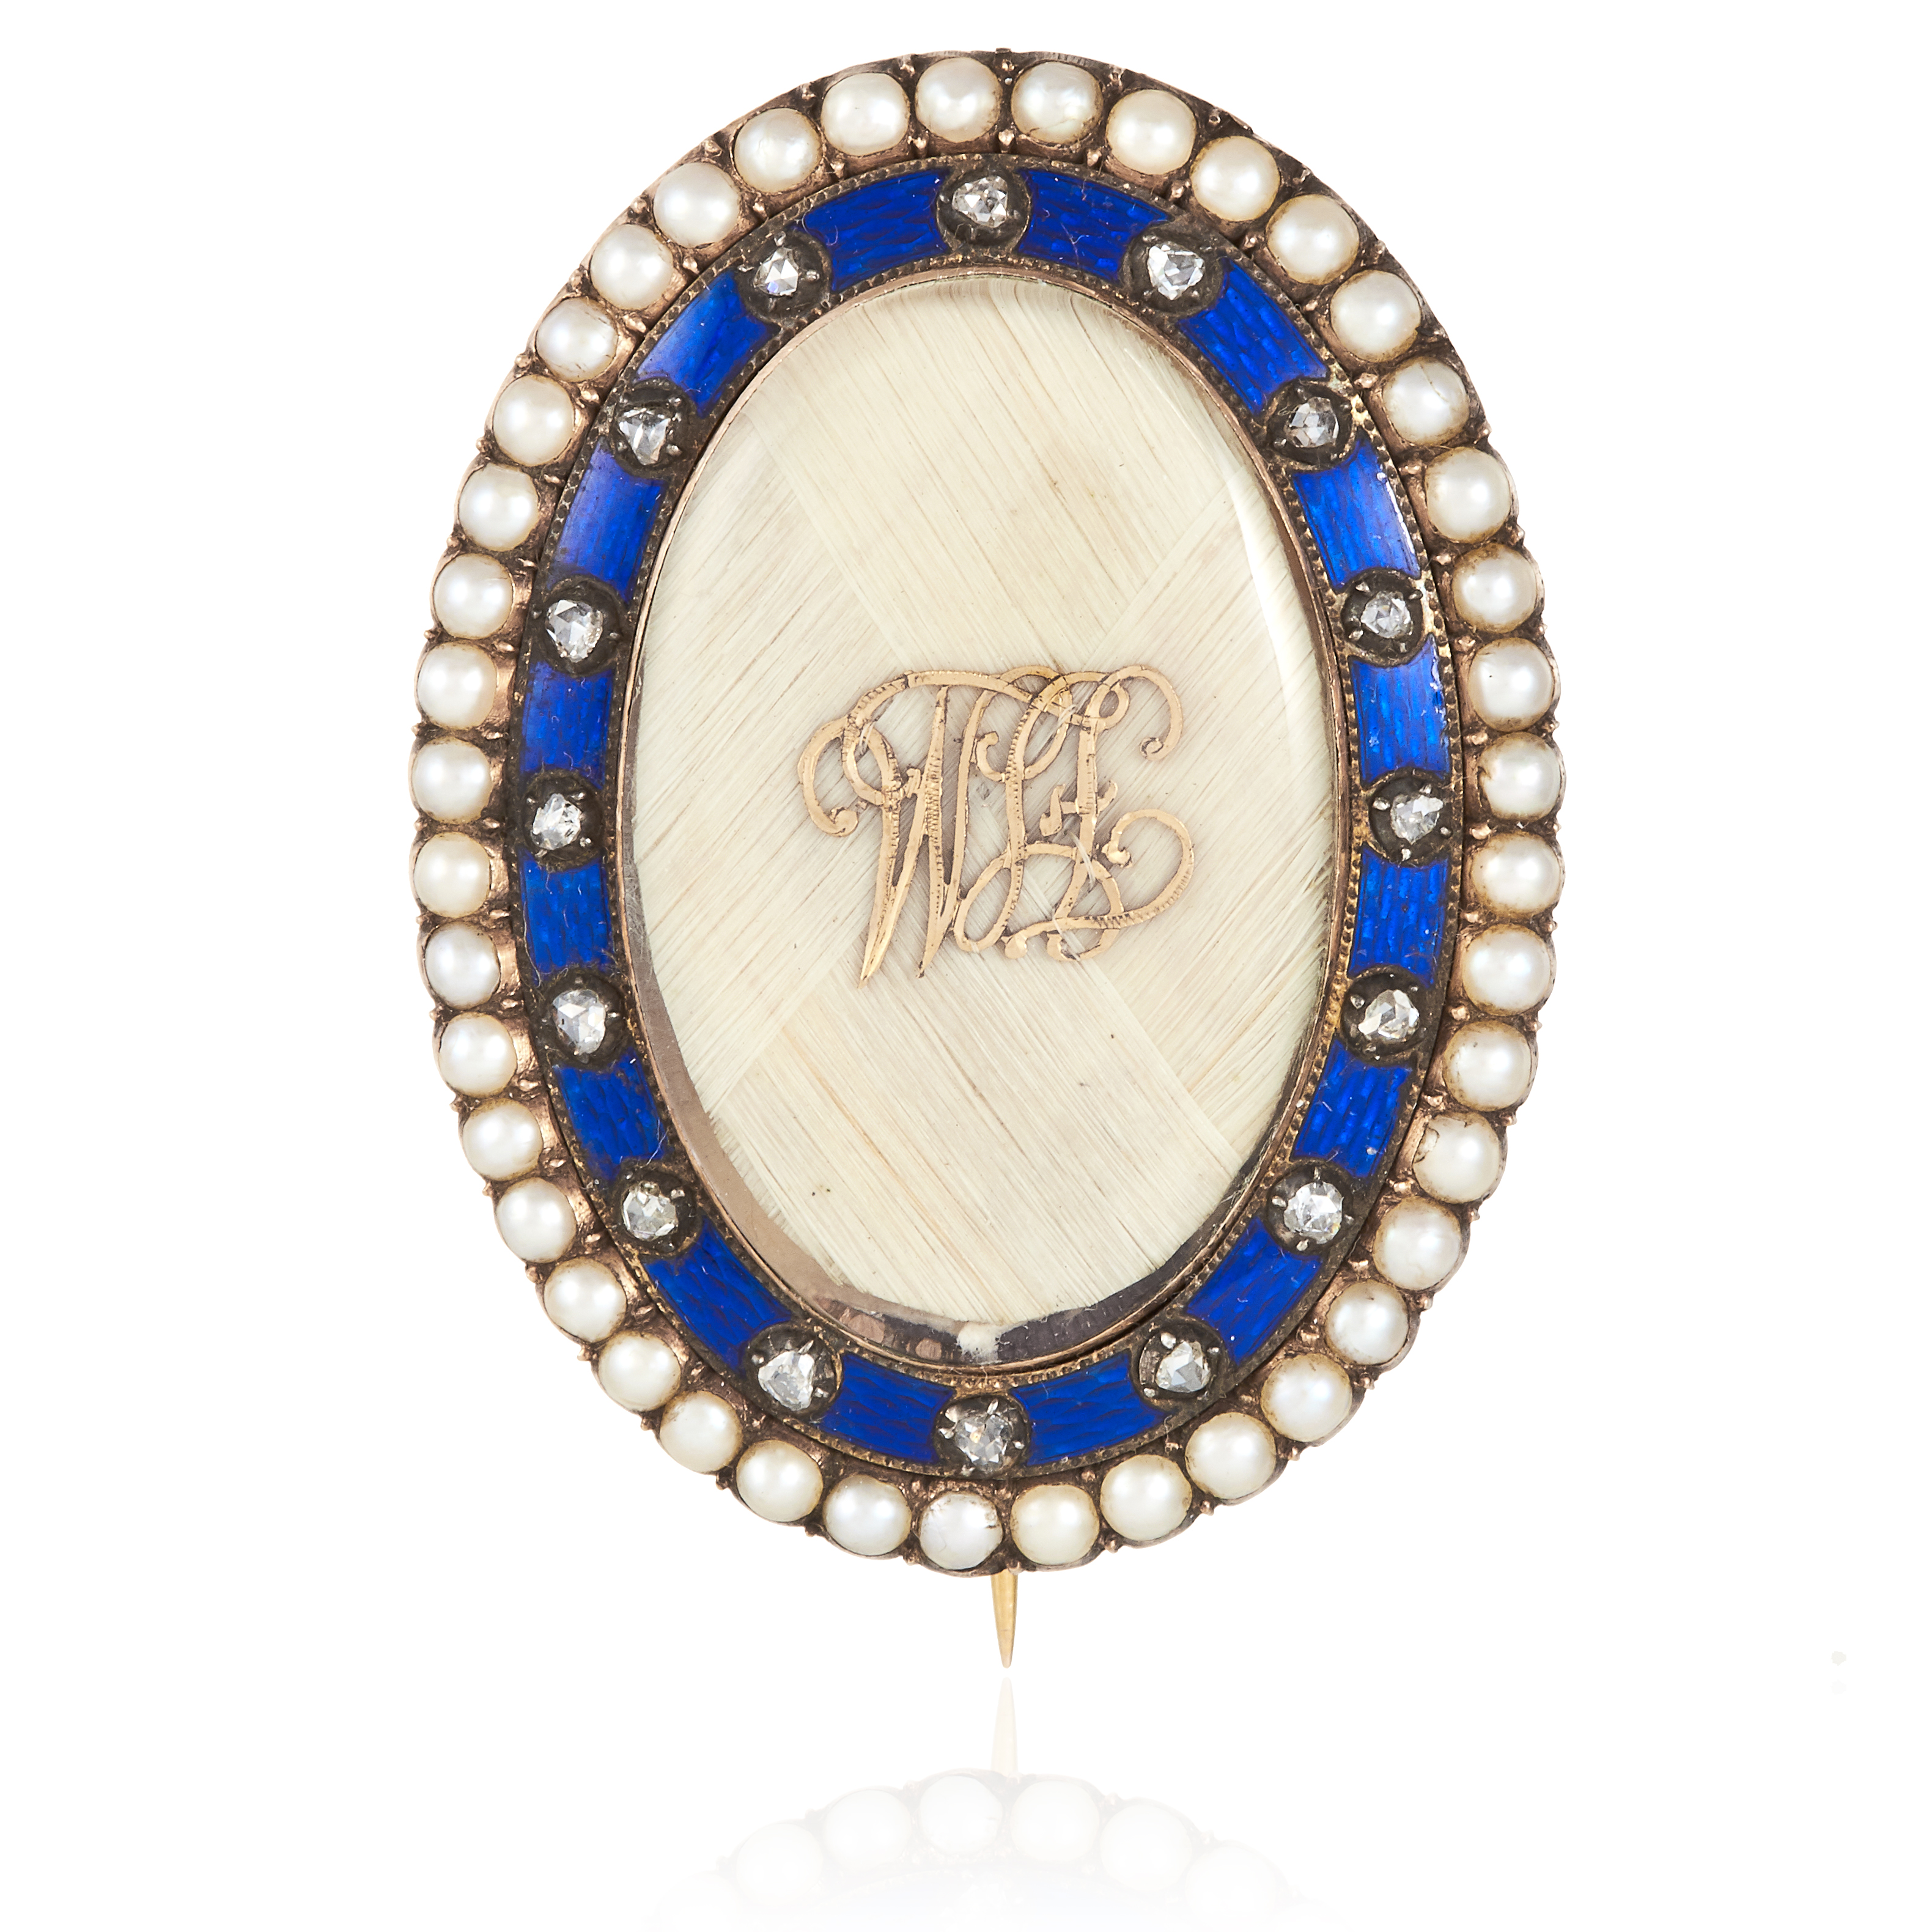 Los 18 - AN ANTIQUE PEARL, DIAMOND HAIRWORK AND ENAMEL MOURNING BROOCH in high carat yellow gold, oval